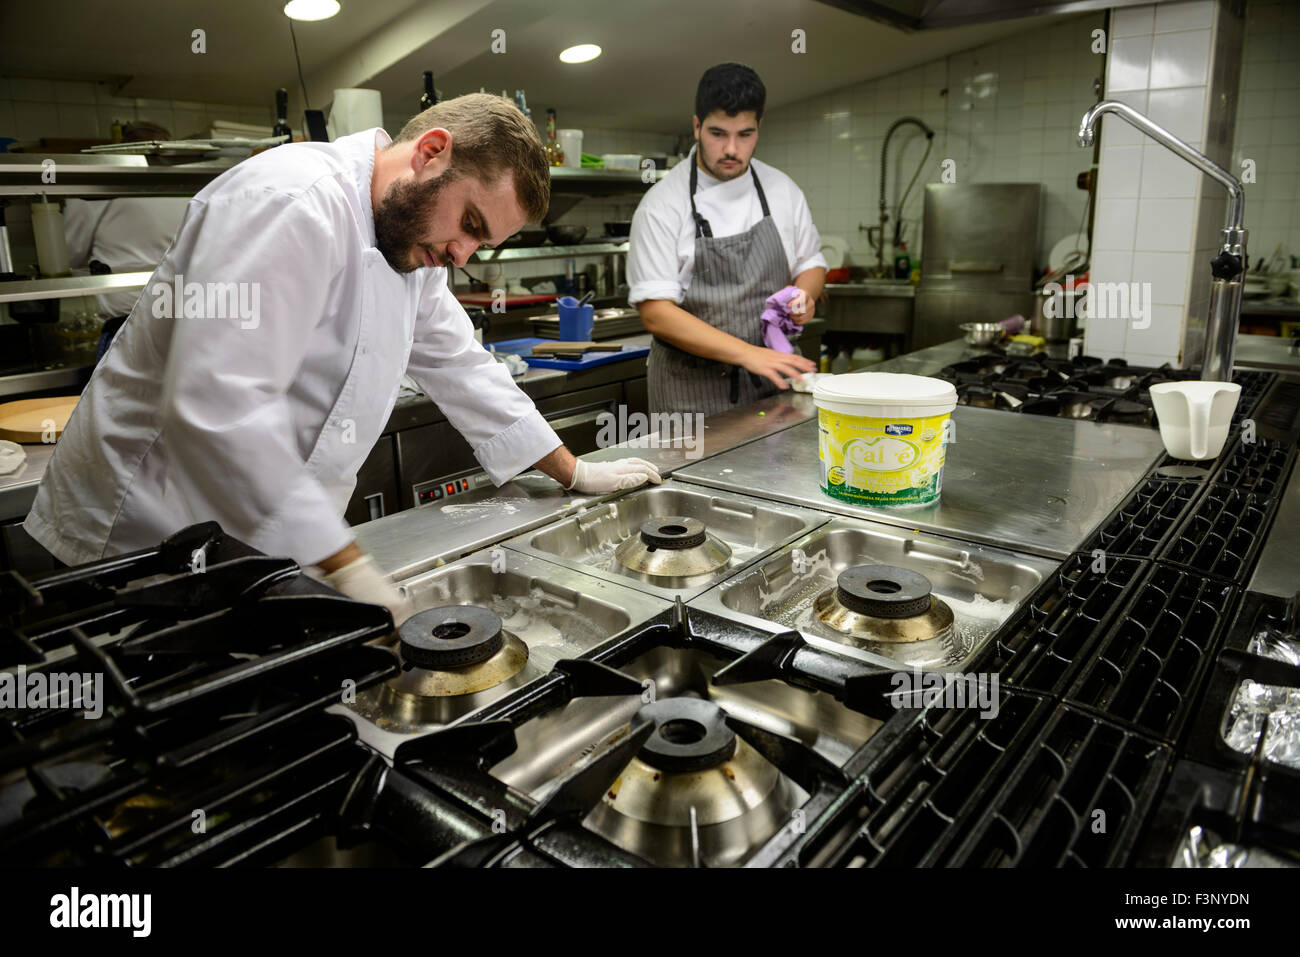 Industrial Kitchen Cleaning Stock Photos & Industrial ...